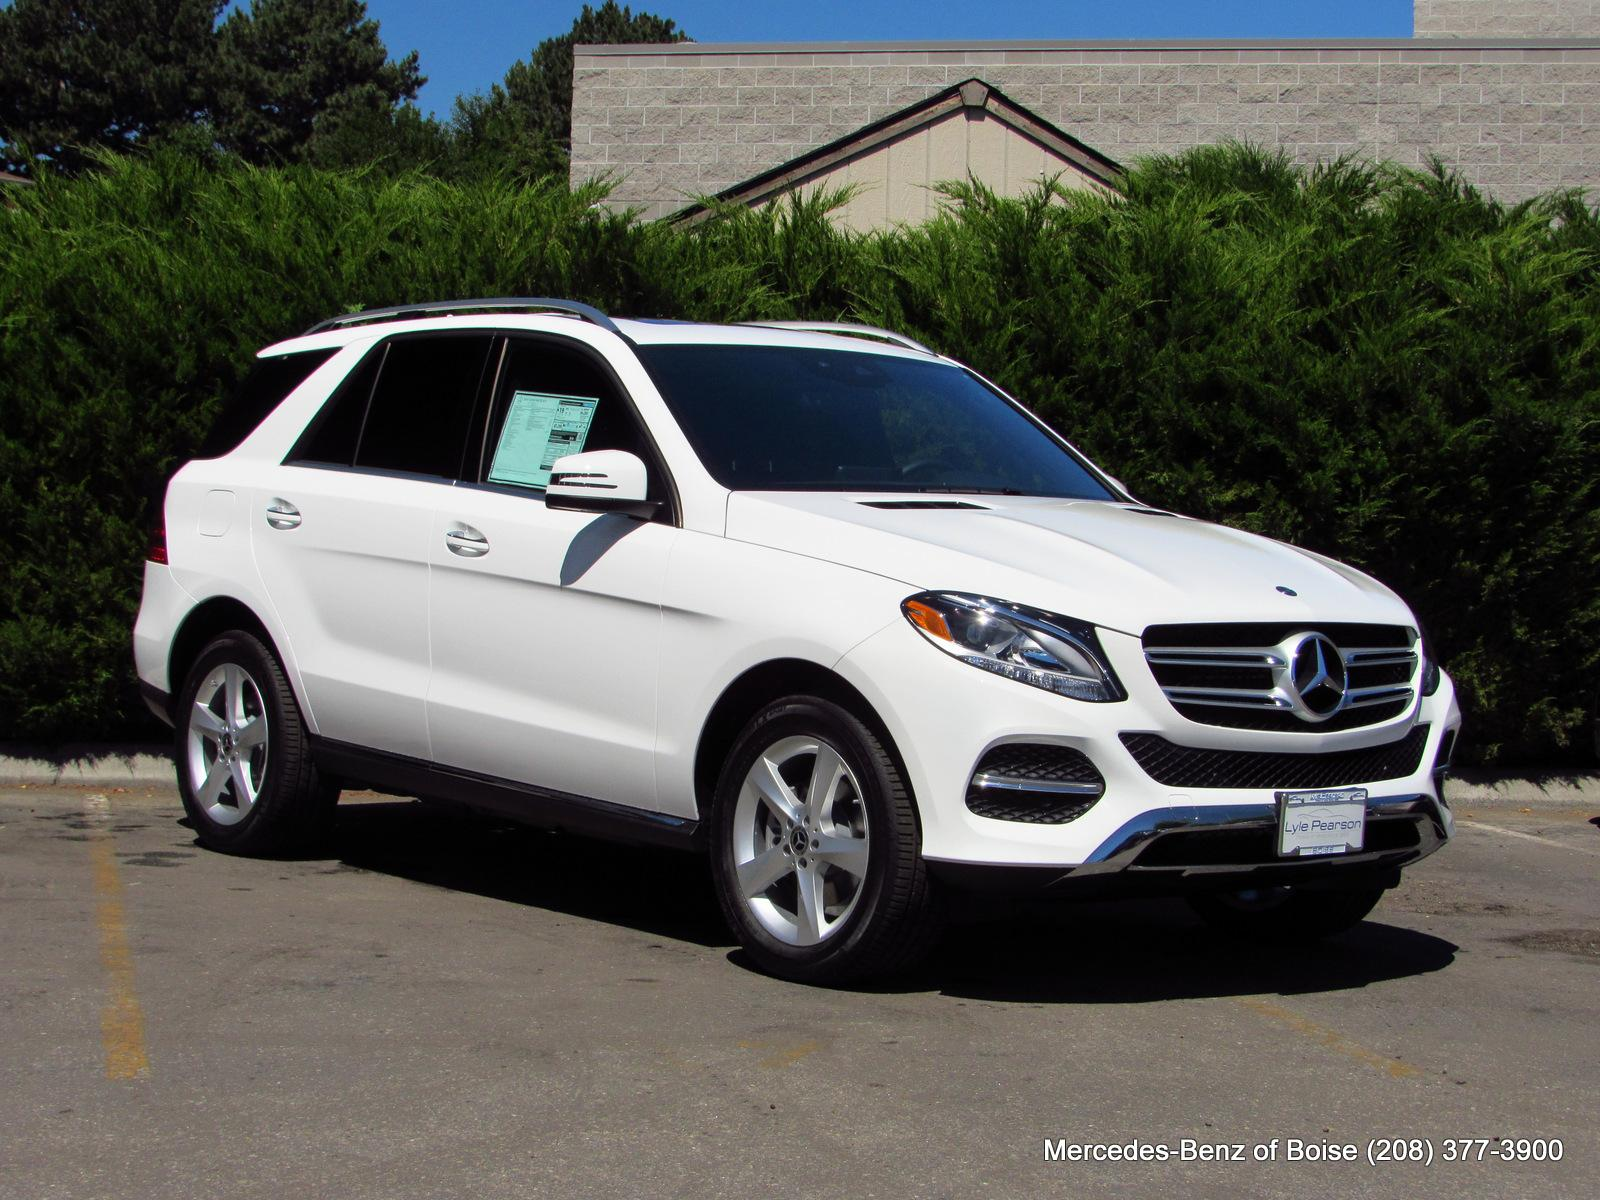 New 2018 Mercedes Benz GLE GLE 350 4MATIC SUV Sport Utility in